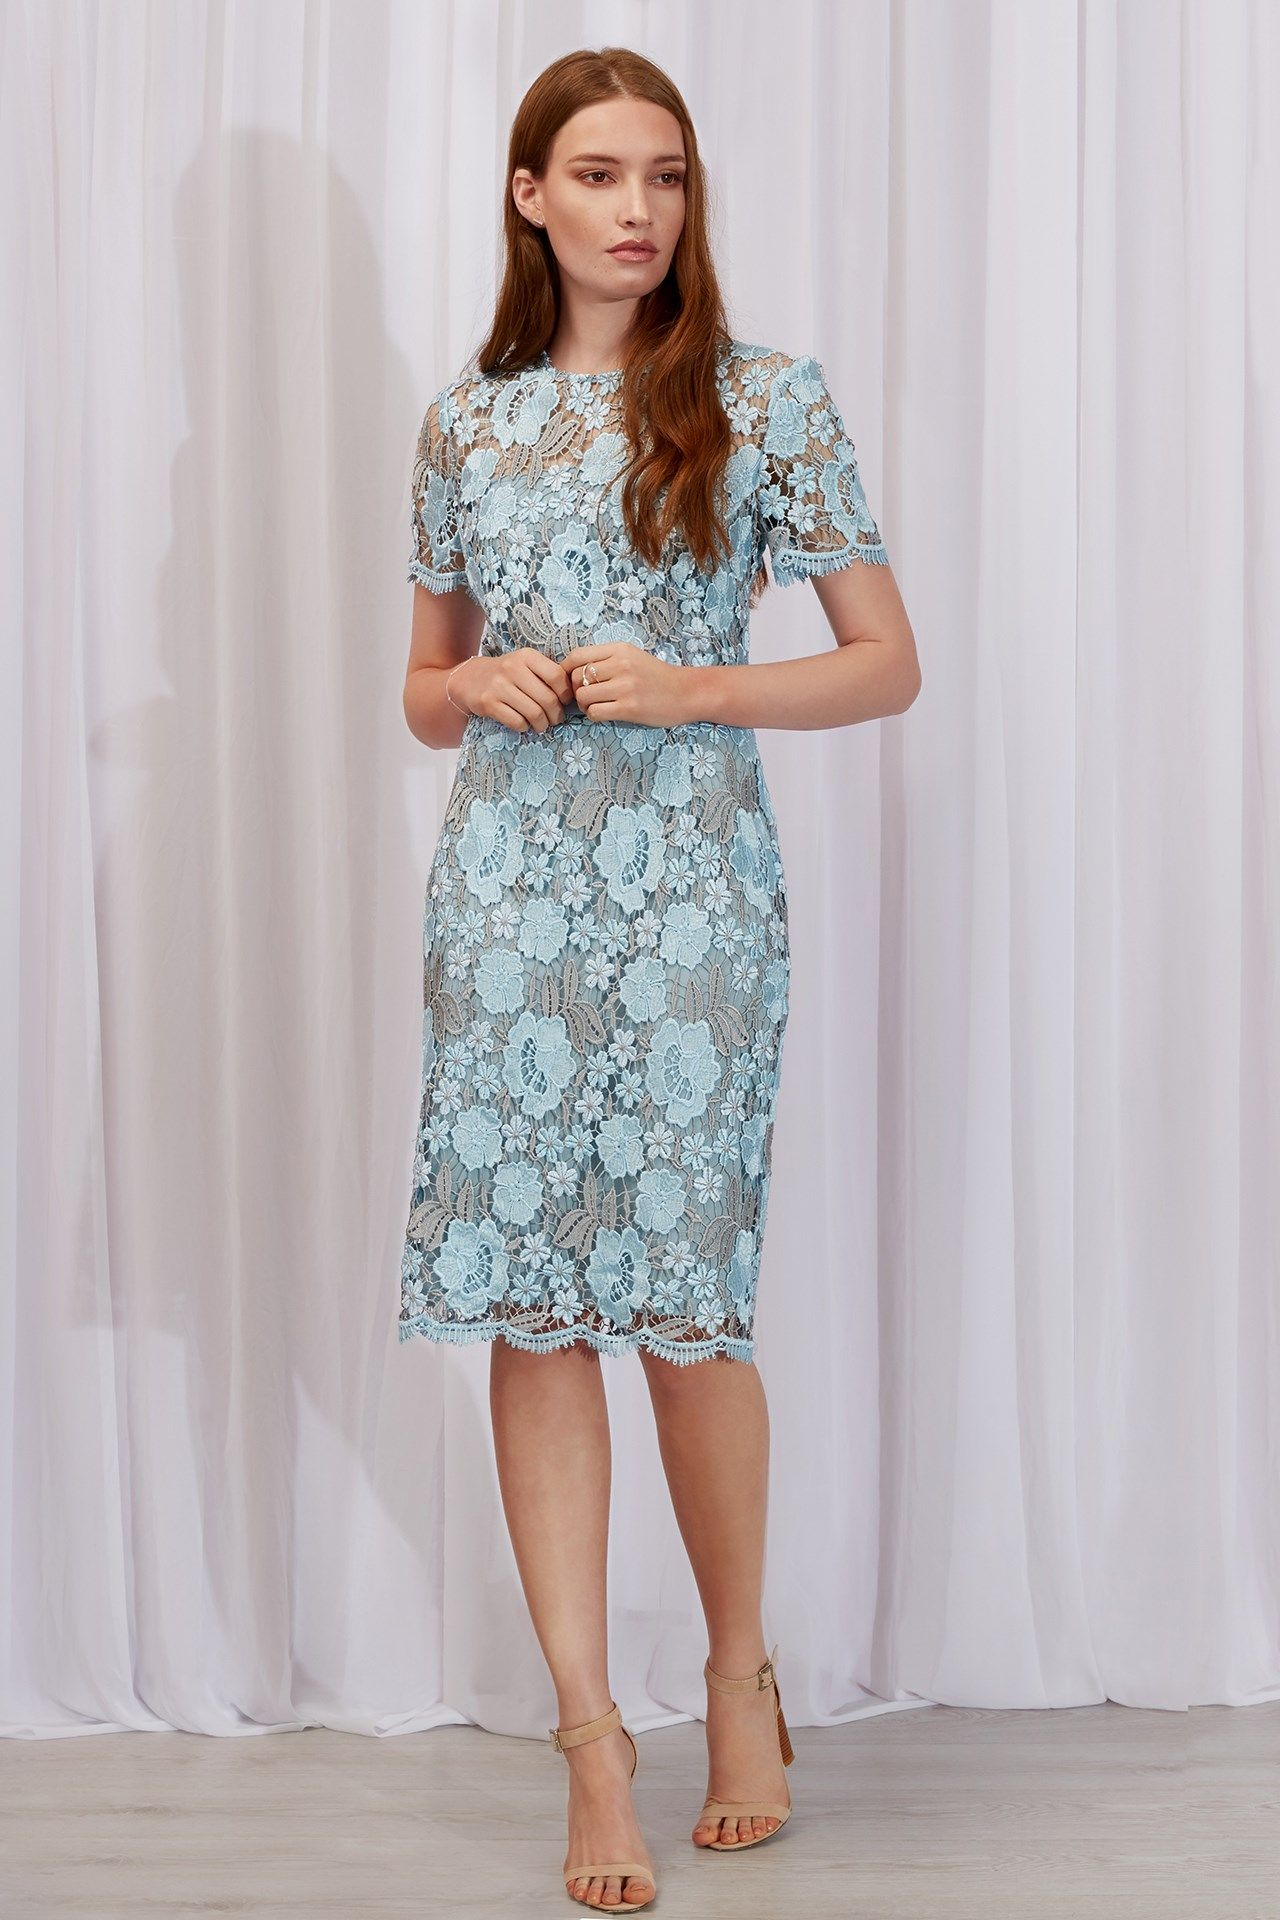 Mother Of The Bride Dresses & Outfits (BridesMagazine.co.uk) | Bride ...